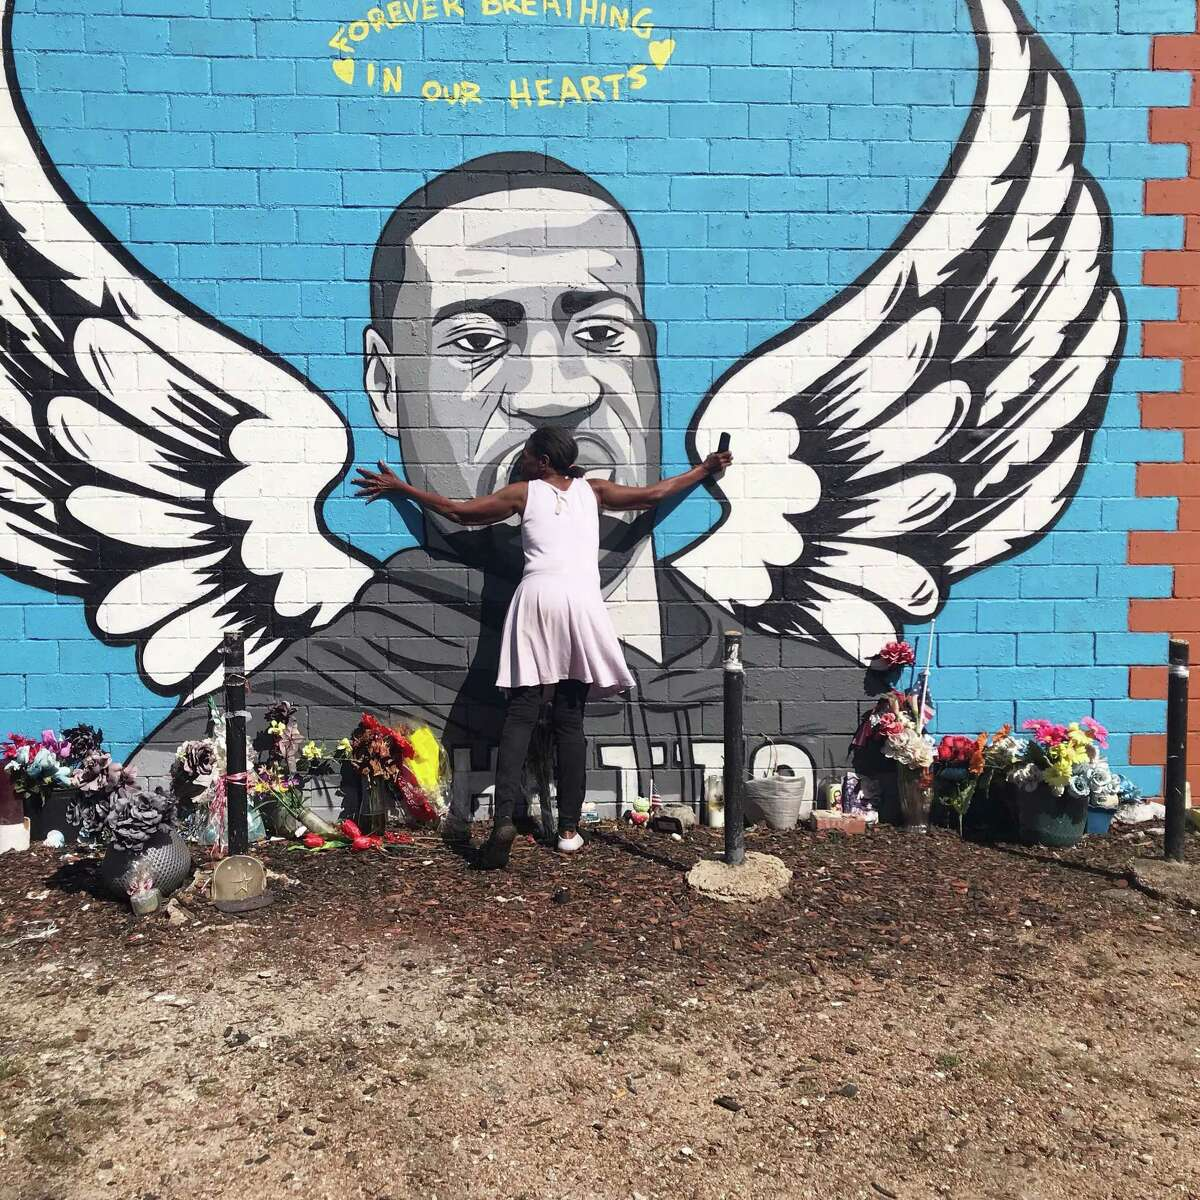 Sheila Masters hugs a mural of George Floyd in Third Ward Tuesday afternoon after a jury found Derek Chauvin, the officer who killed Floyd, guilty of second degree murder, third degree murder and manslaughter.